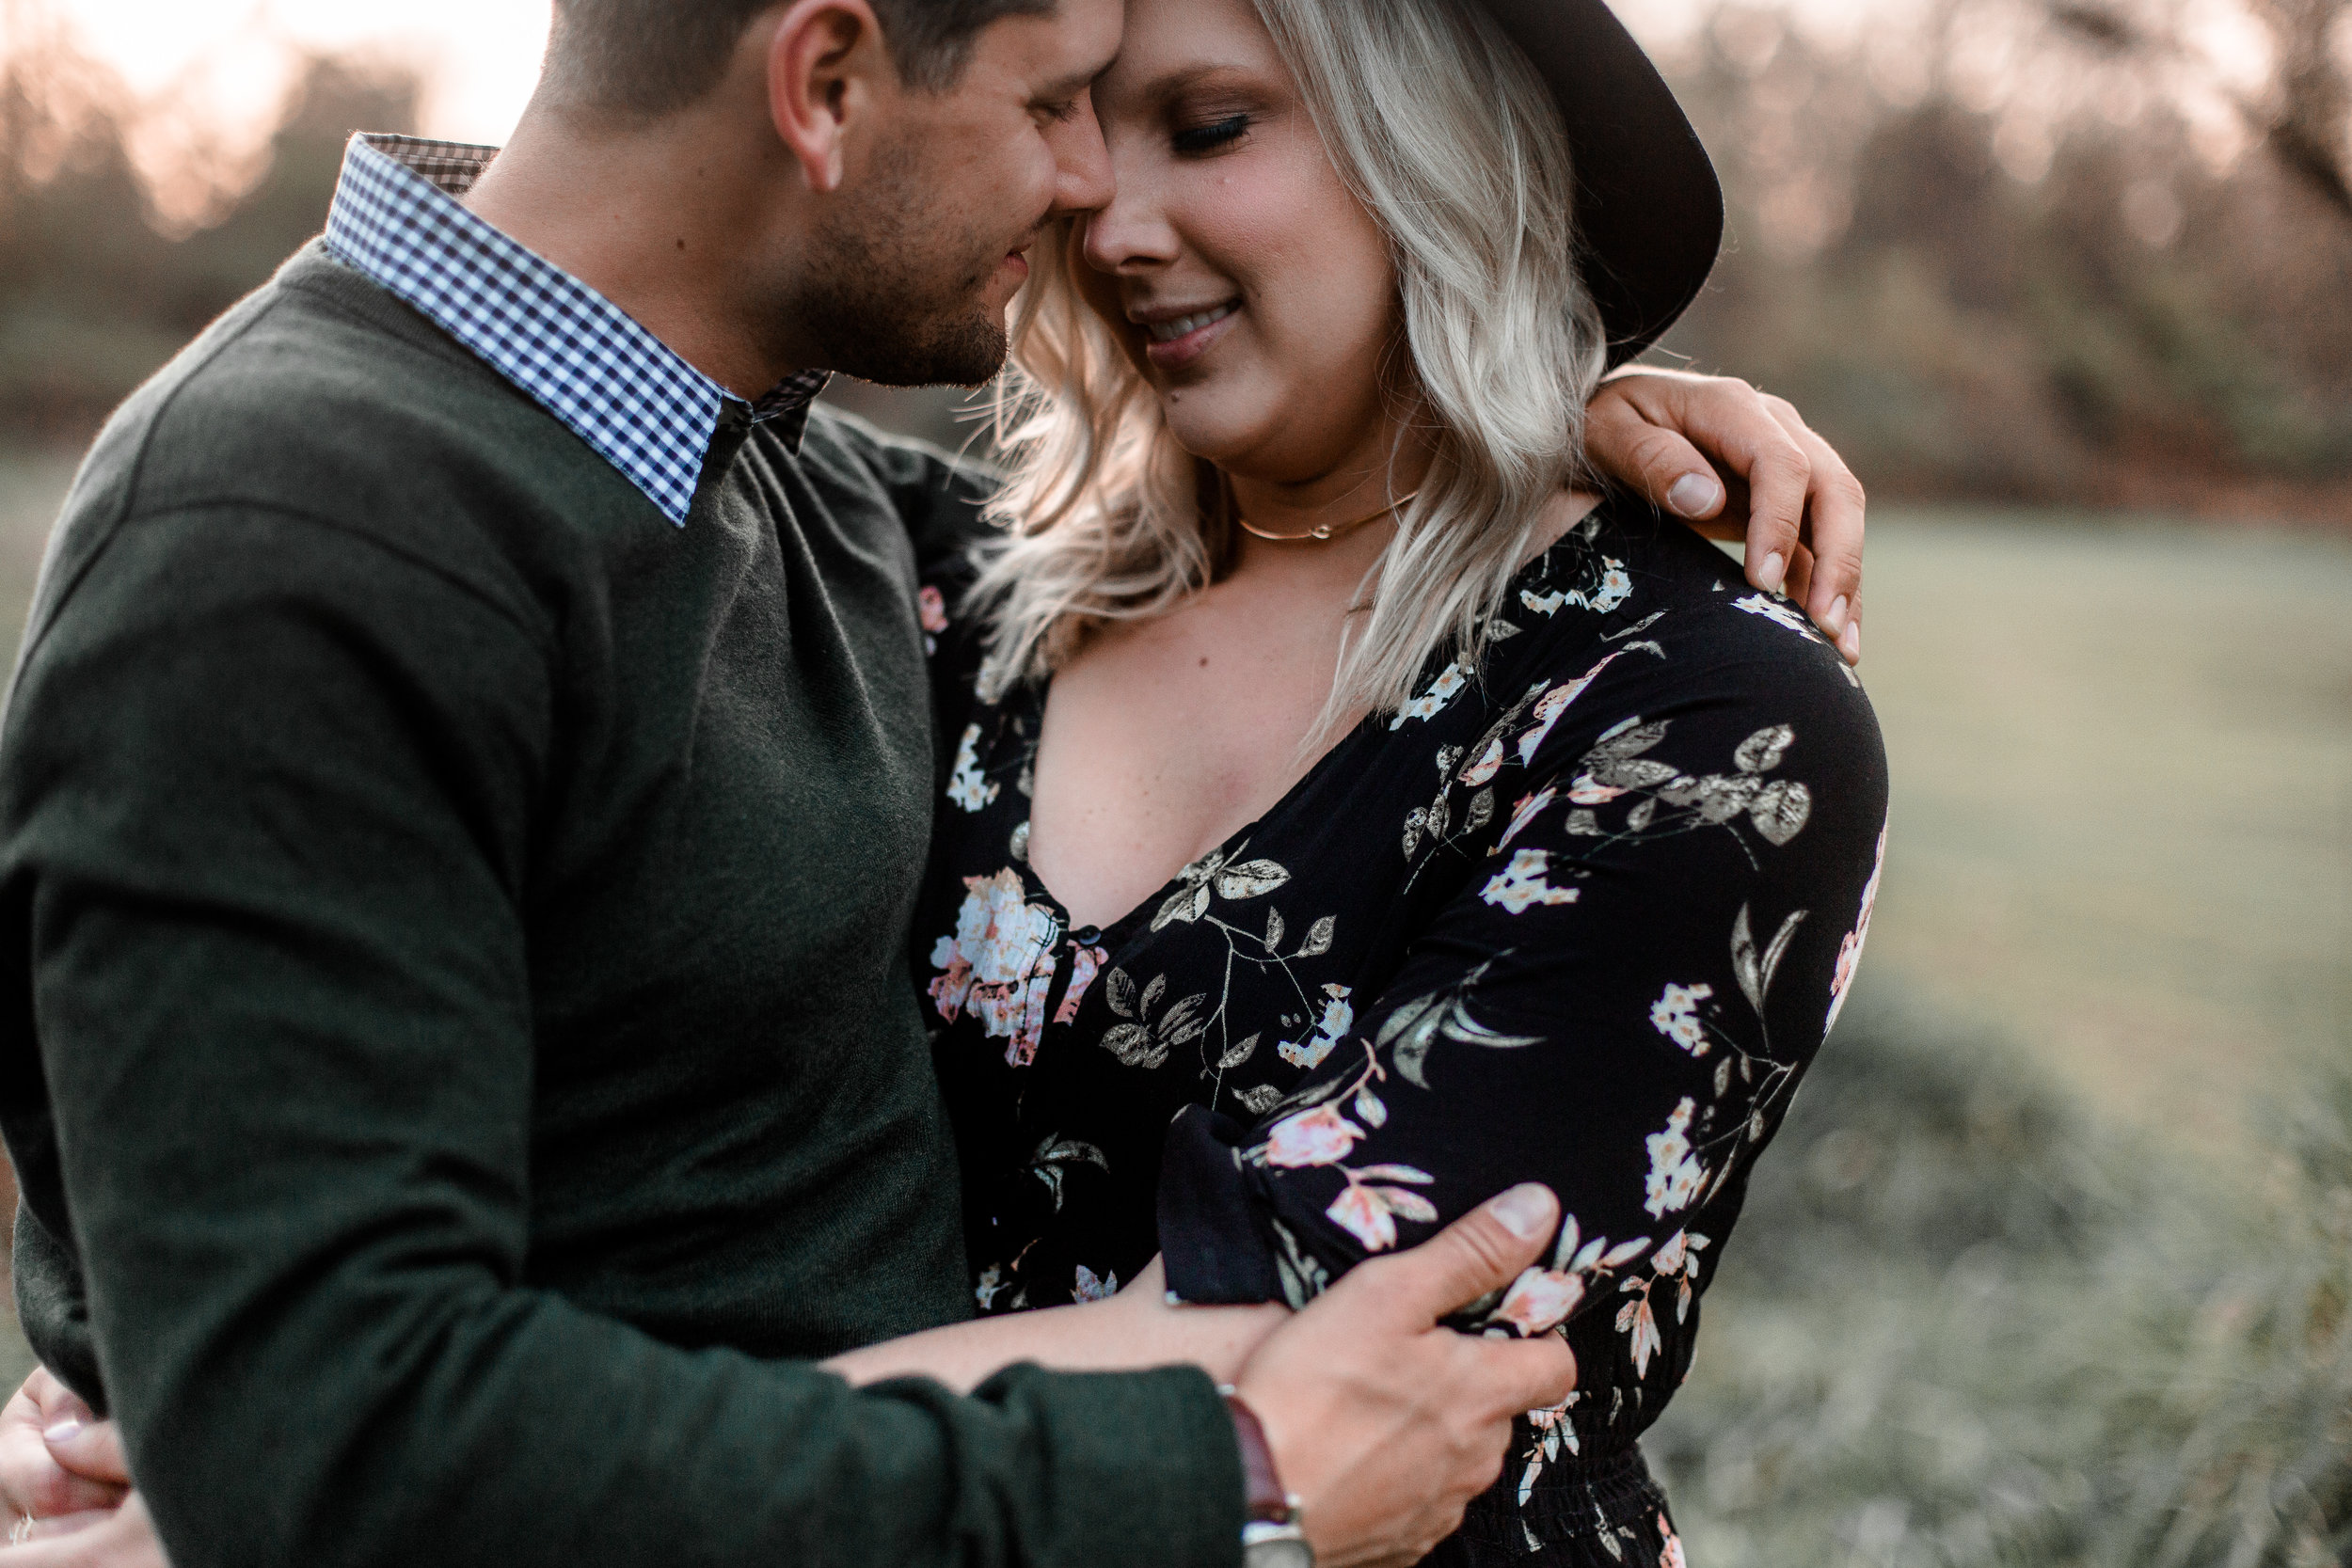 nicole-daacke-photography-carefree-bohemian-lancaster-pa-pennsylvania-engagement-photos-engagement-session-golden-sunset-adventure-session-in-lancaster-pa-lancaster-pa-outdoor-wedding-photographer-39.jpg